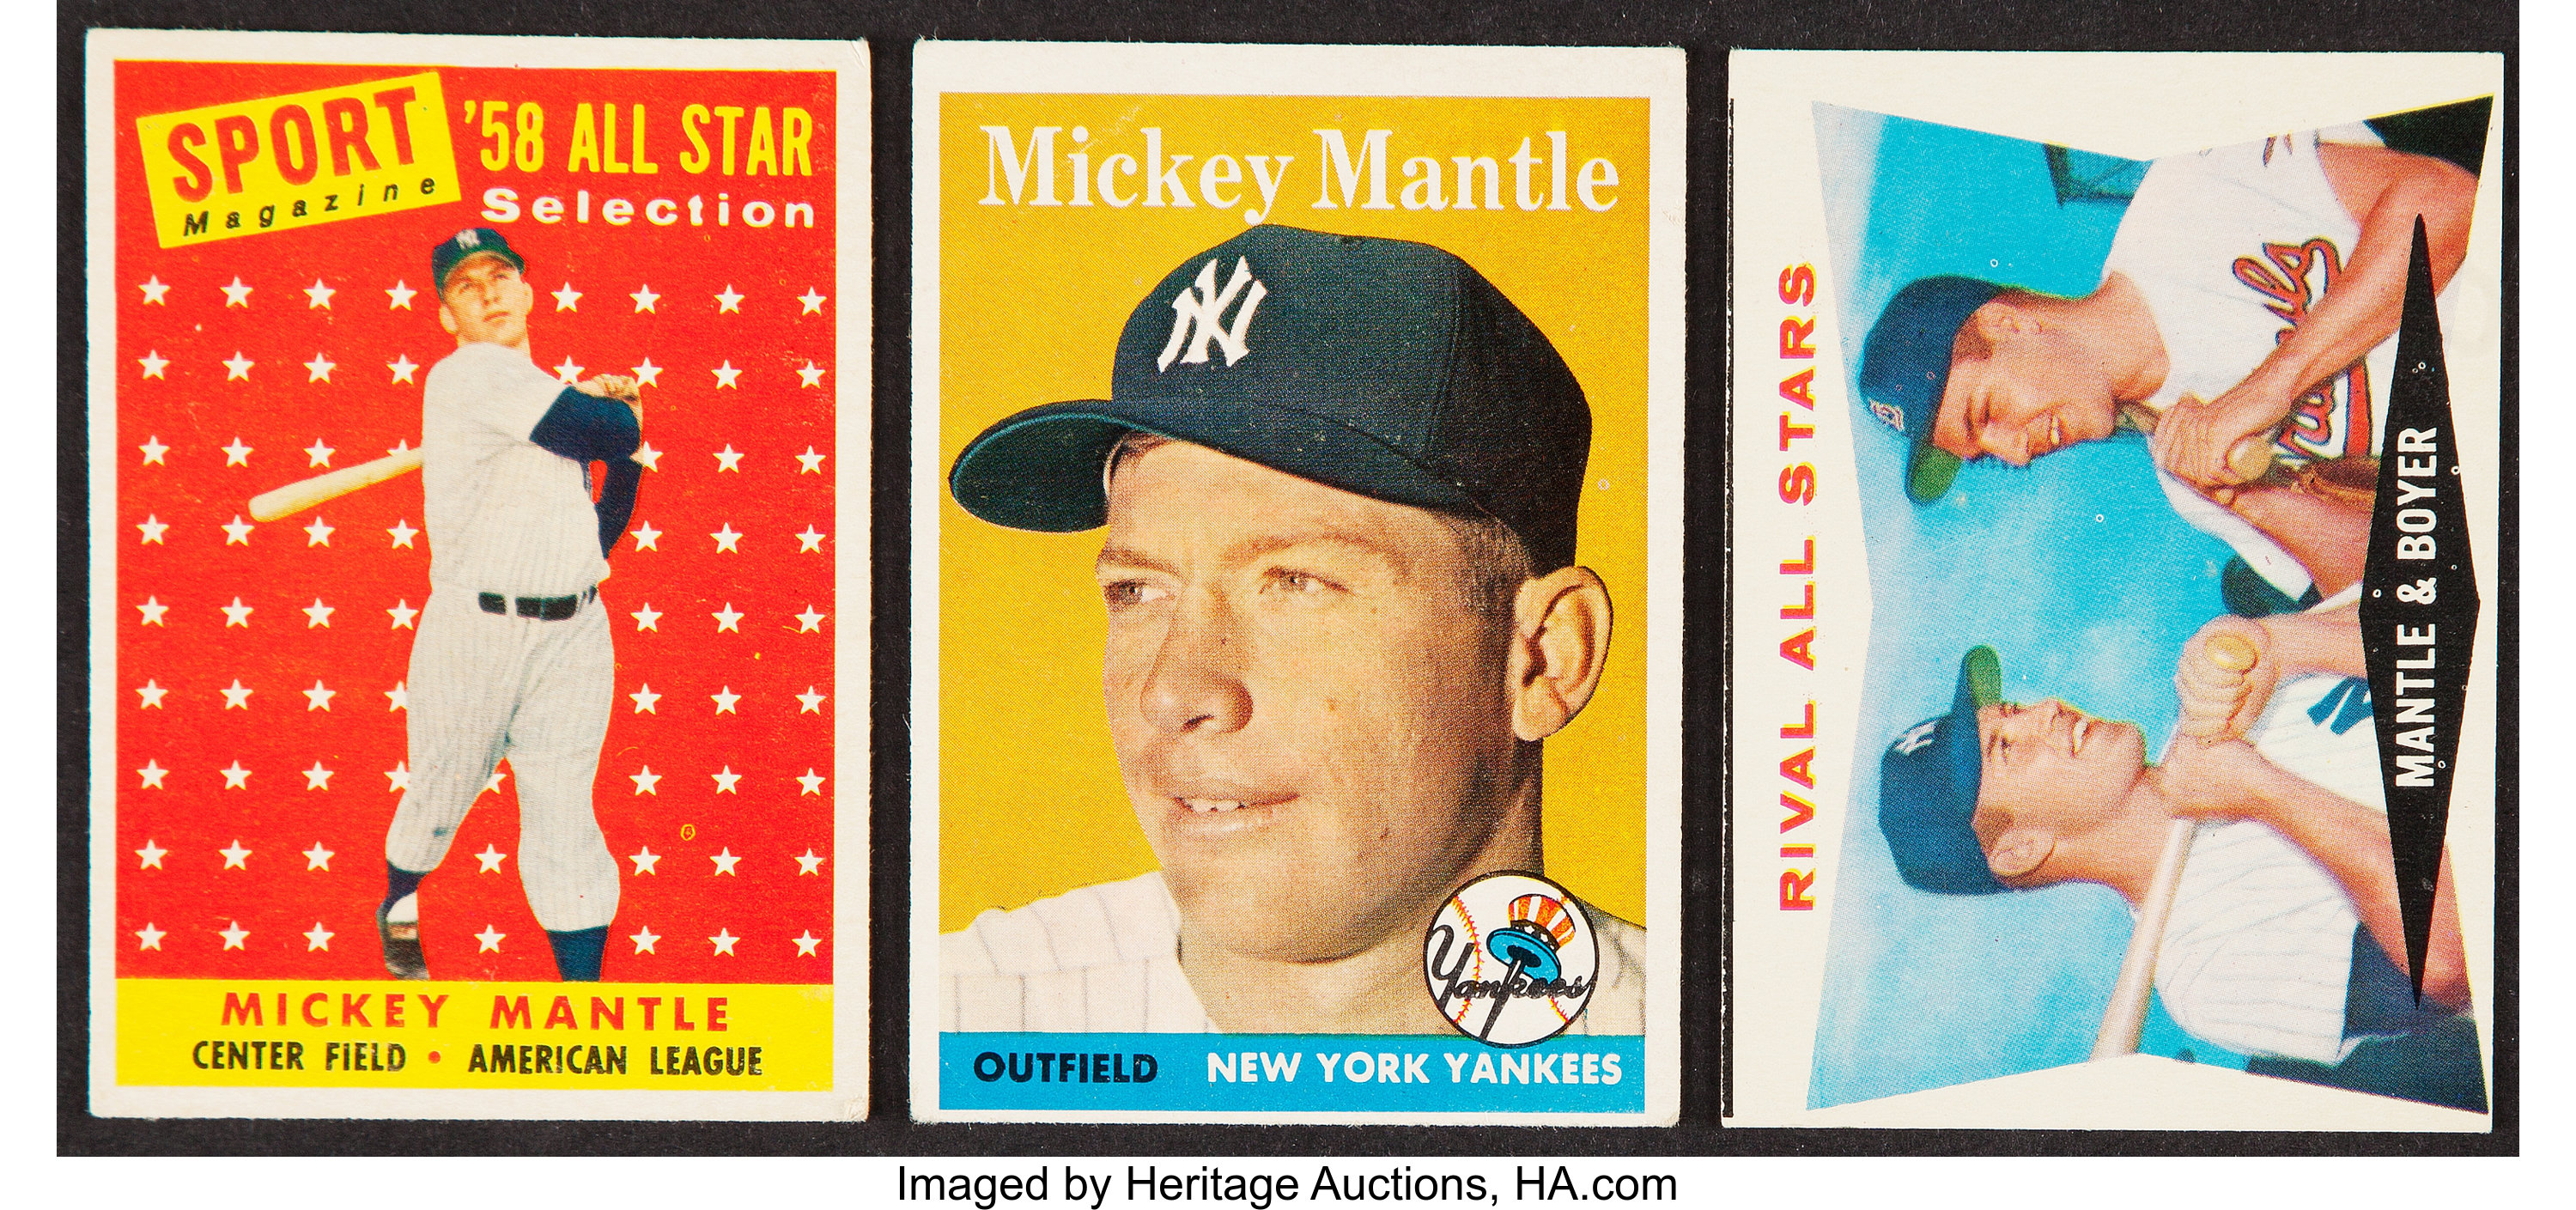 1958 1960 Topps Mickey Mantle Graded Trio 3 Baseball Cards Lot 44070 Heritage Auctions